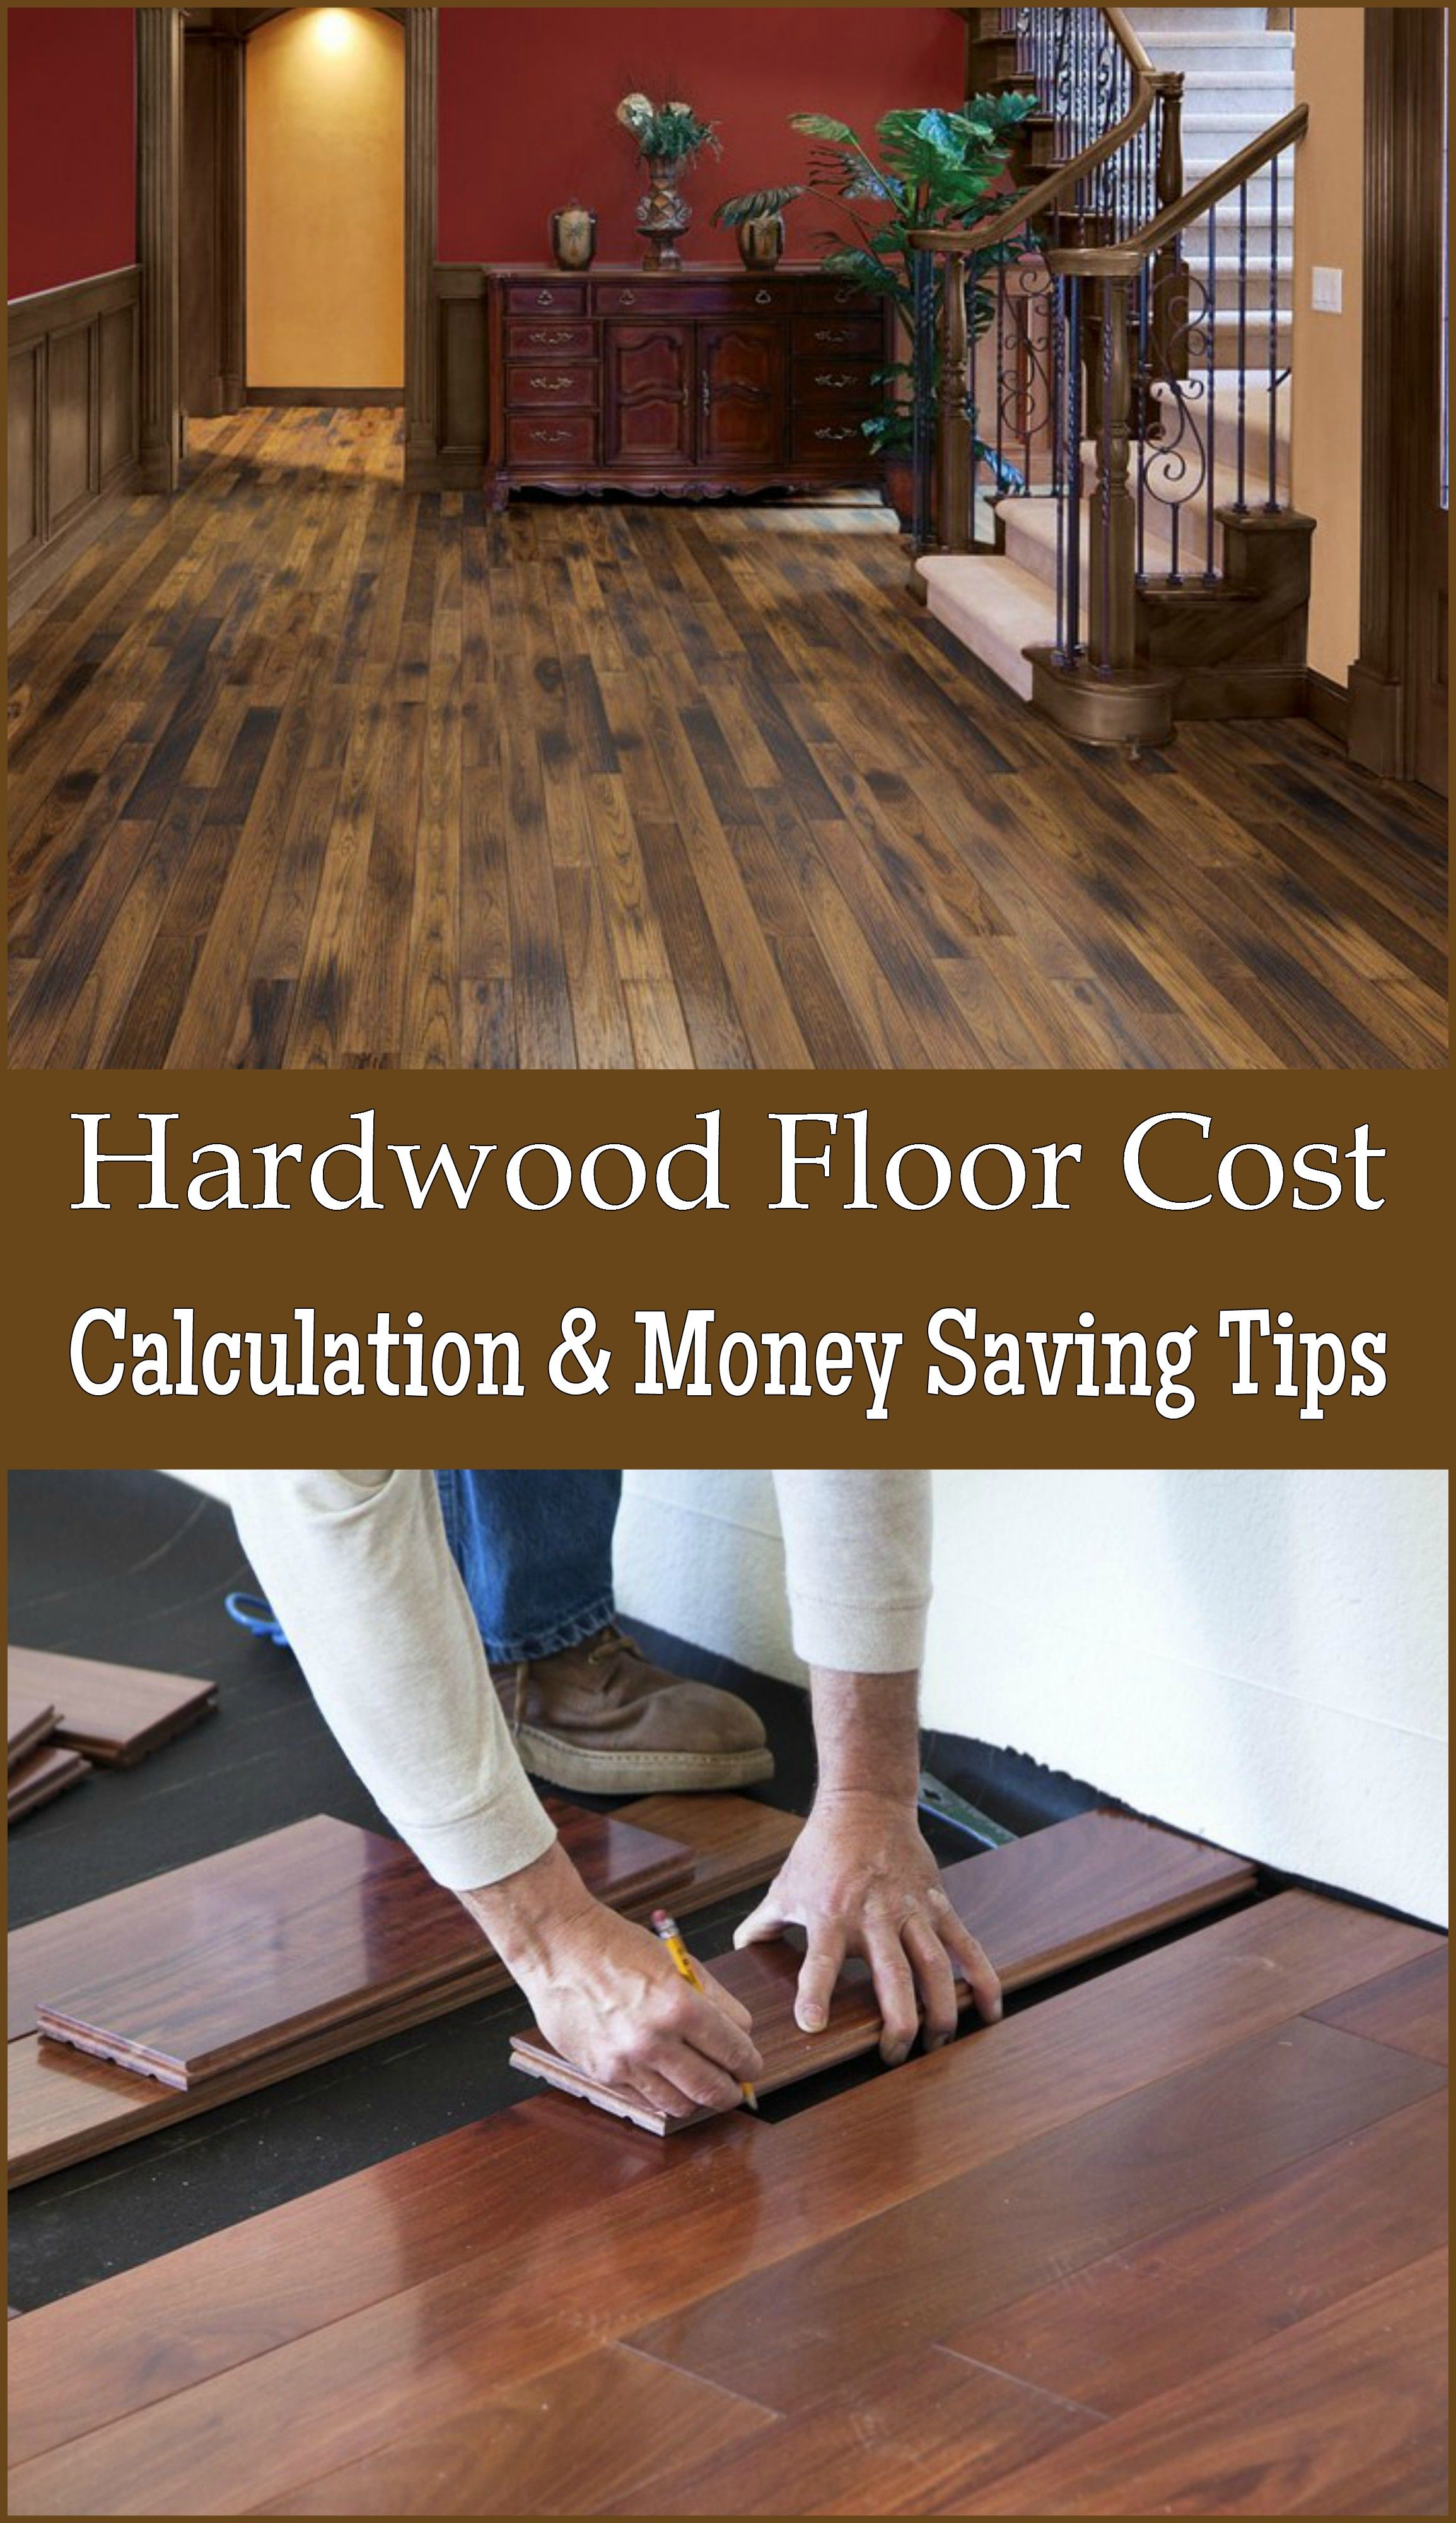 Calculating The Cost Of Installing Hardwood Floor Including The Tips To Save Money During The Process In 2020 Hardwood Floors Flooring Installing Hardwood Floors